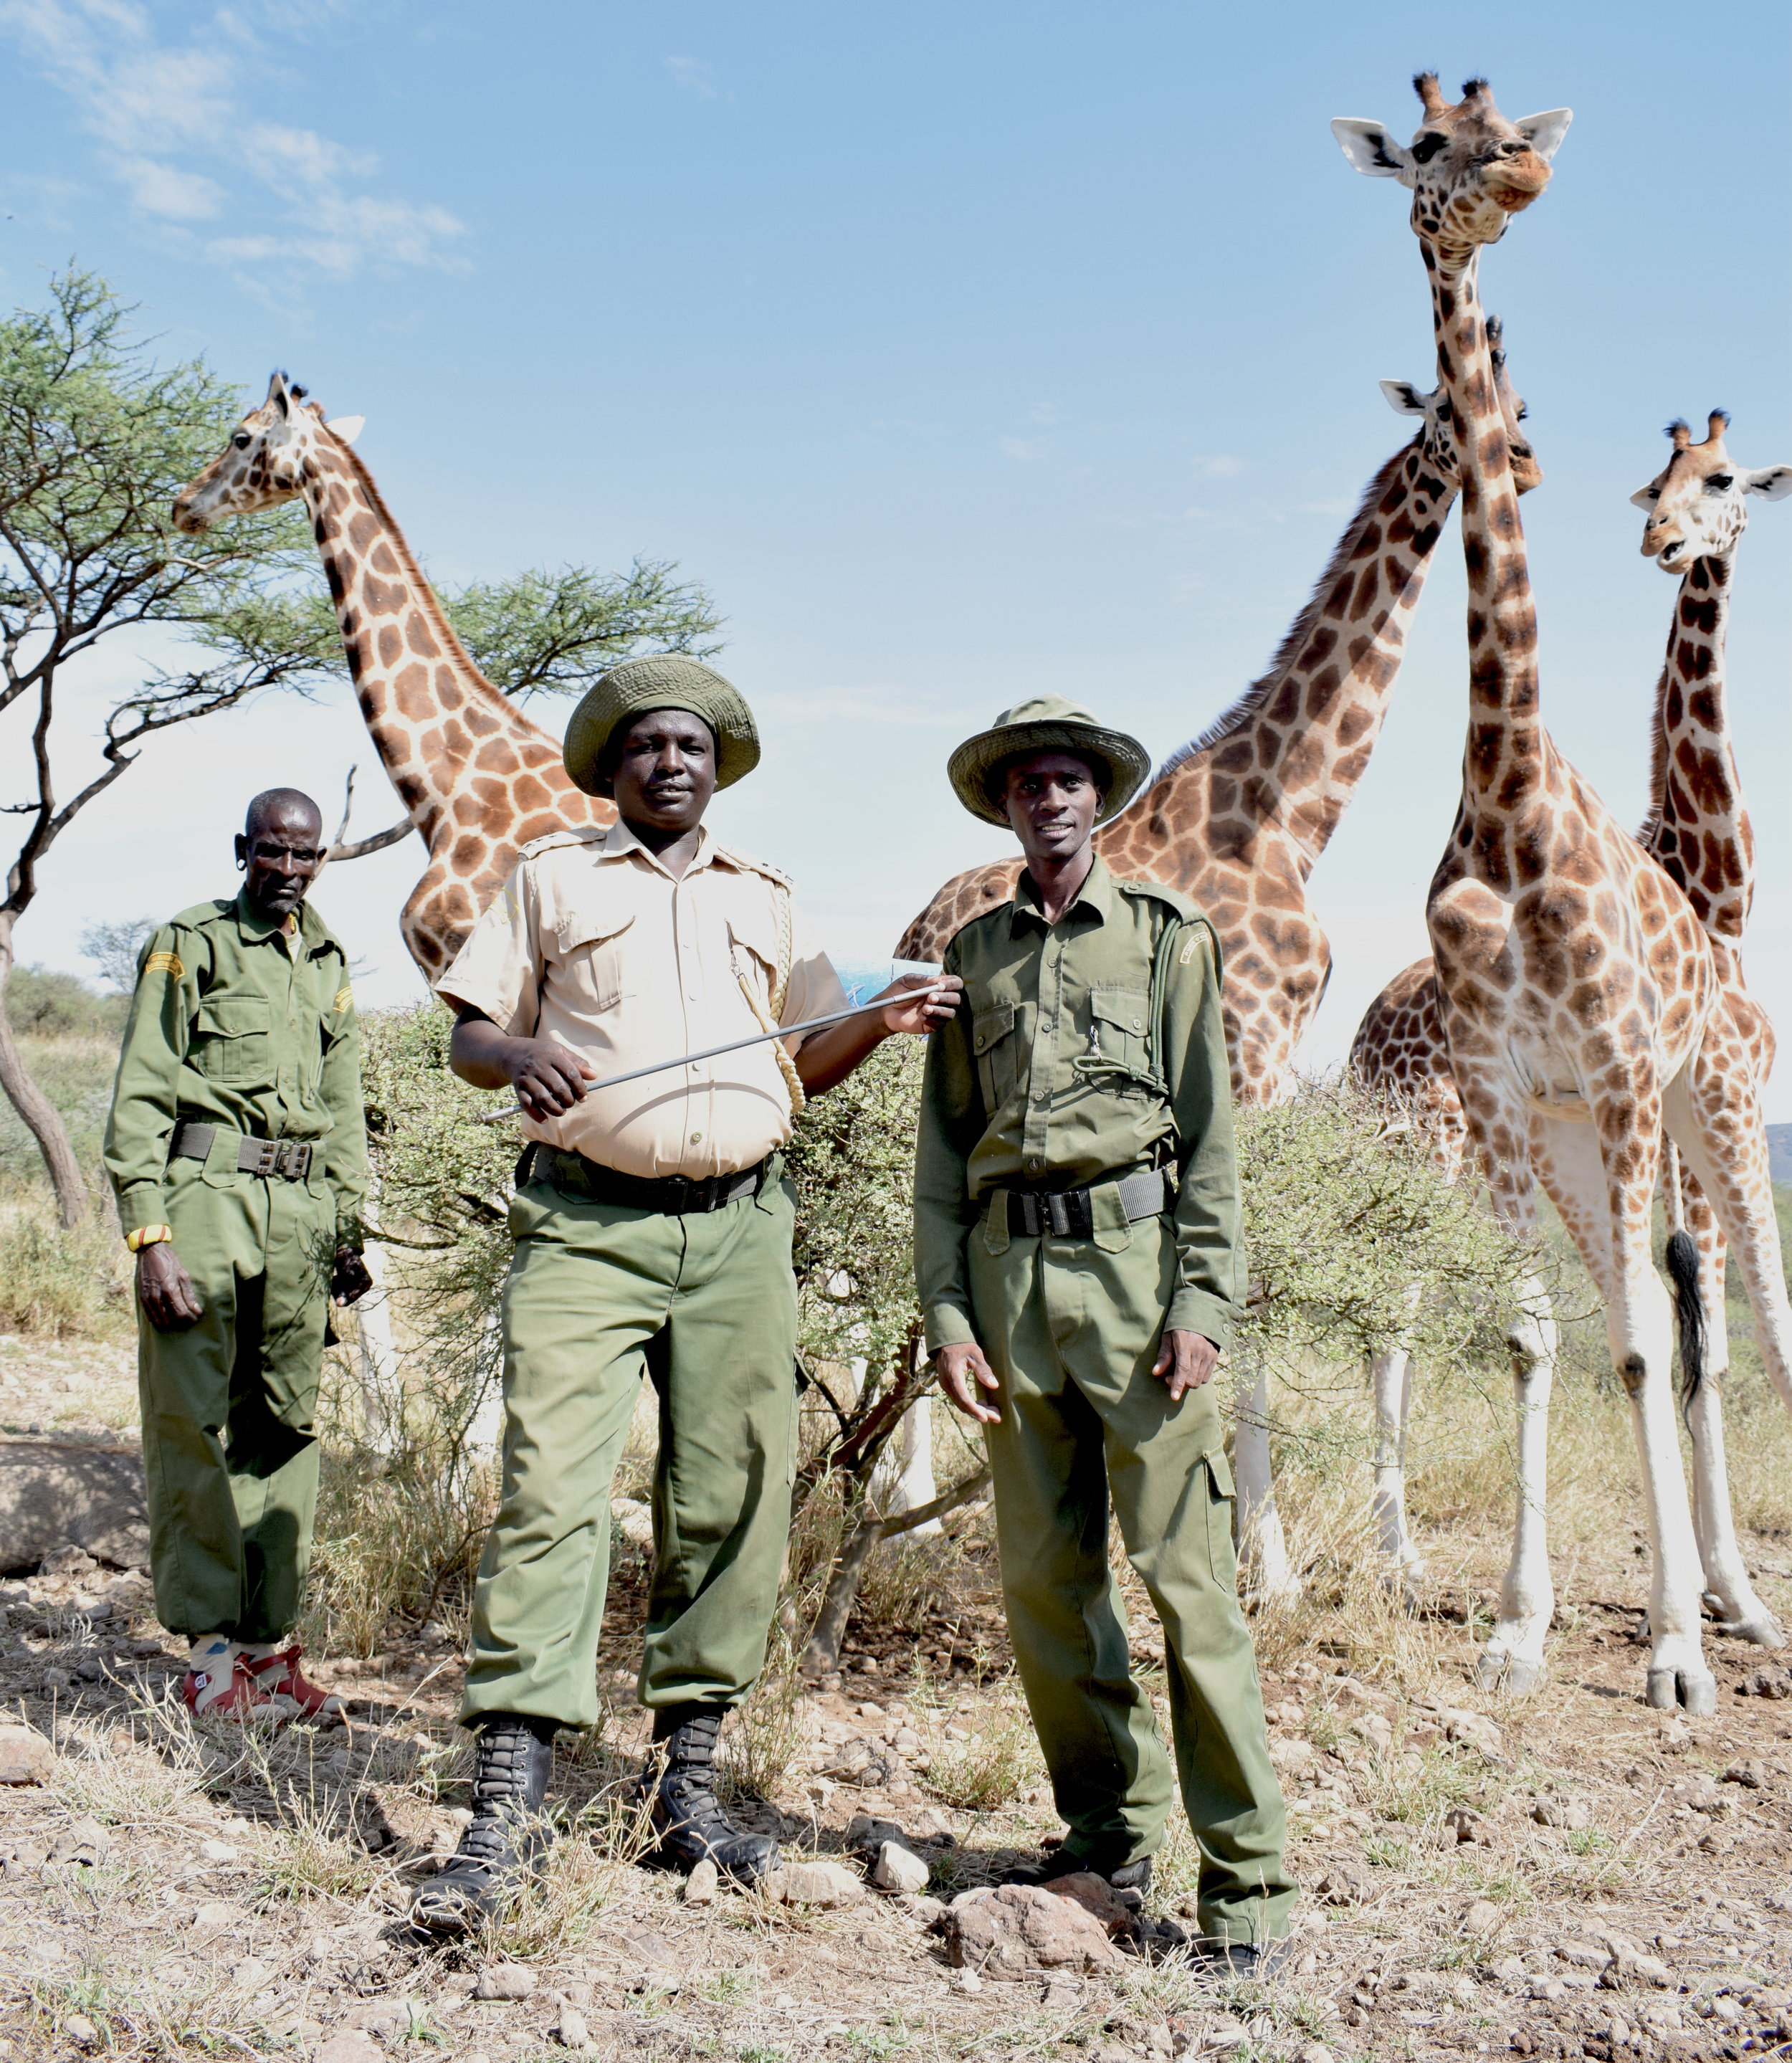 Foreground: Conservancy Warden James Cheptulel, left, and ranger Michael Parkei (right). Photo: Ivy Wairimu